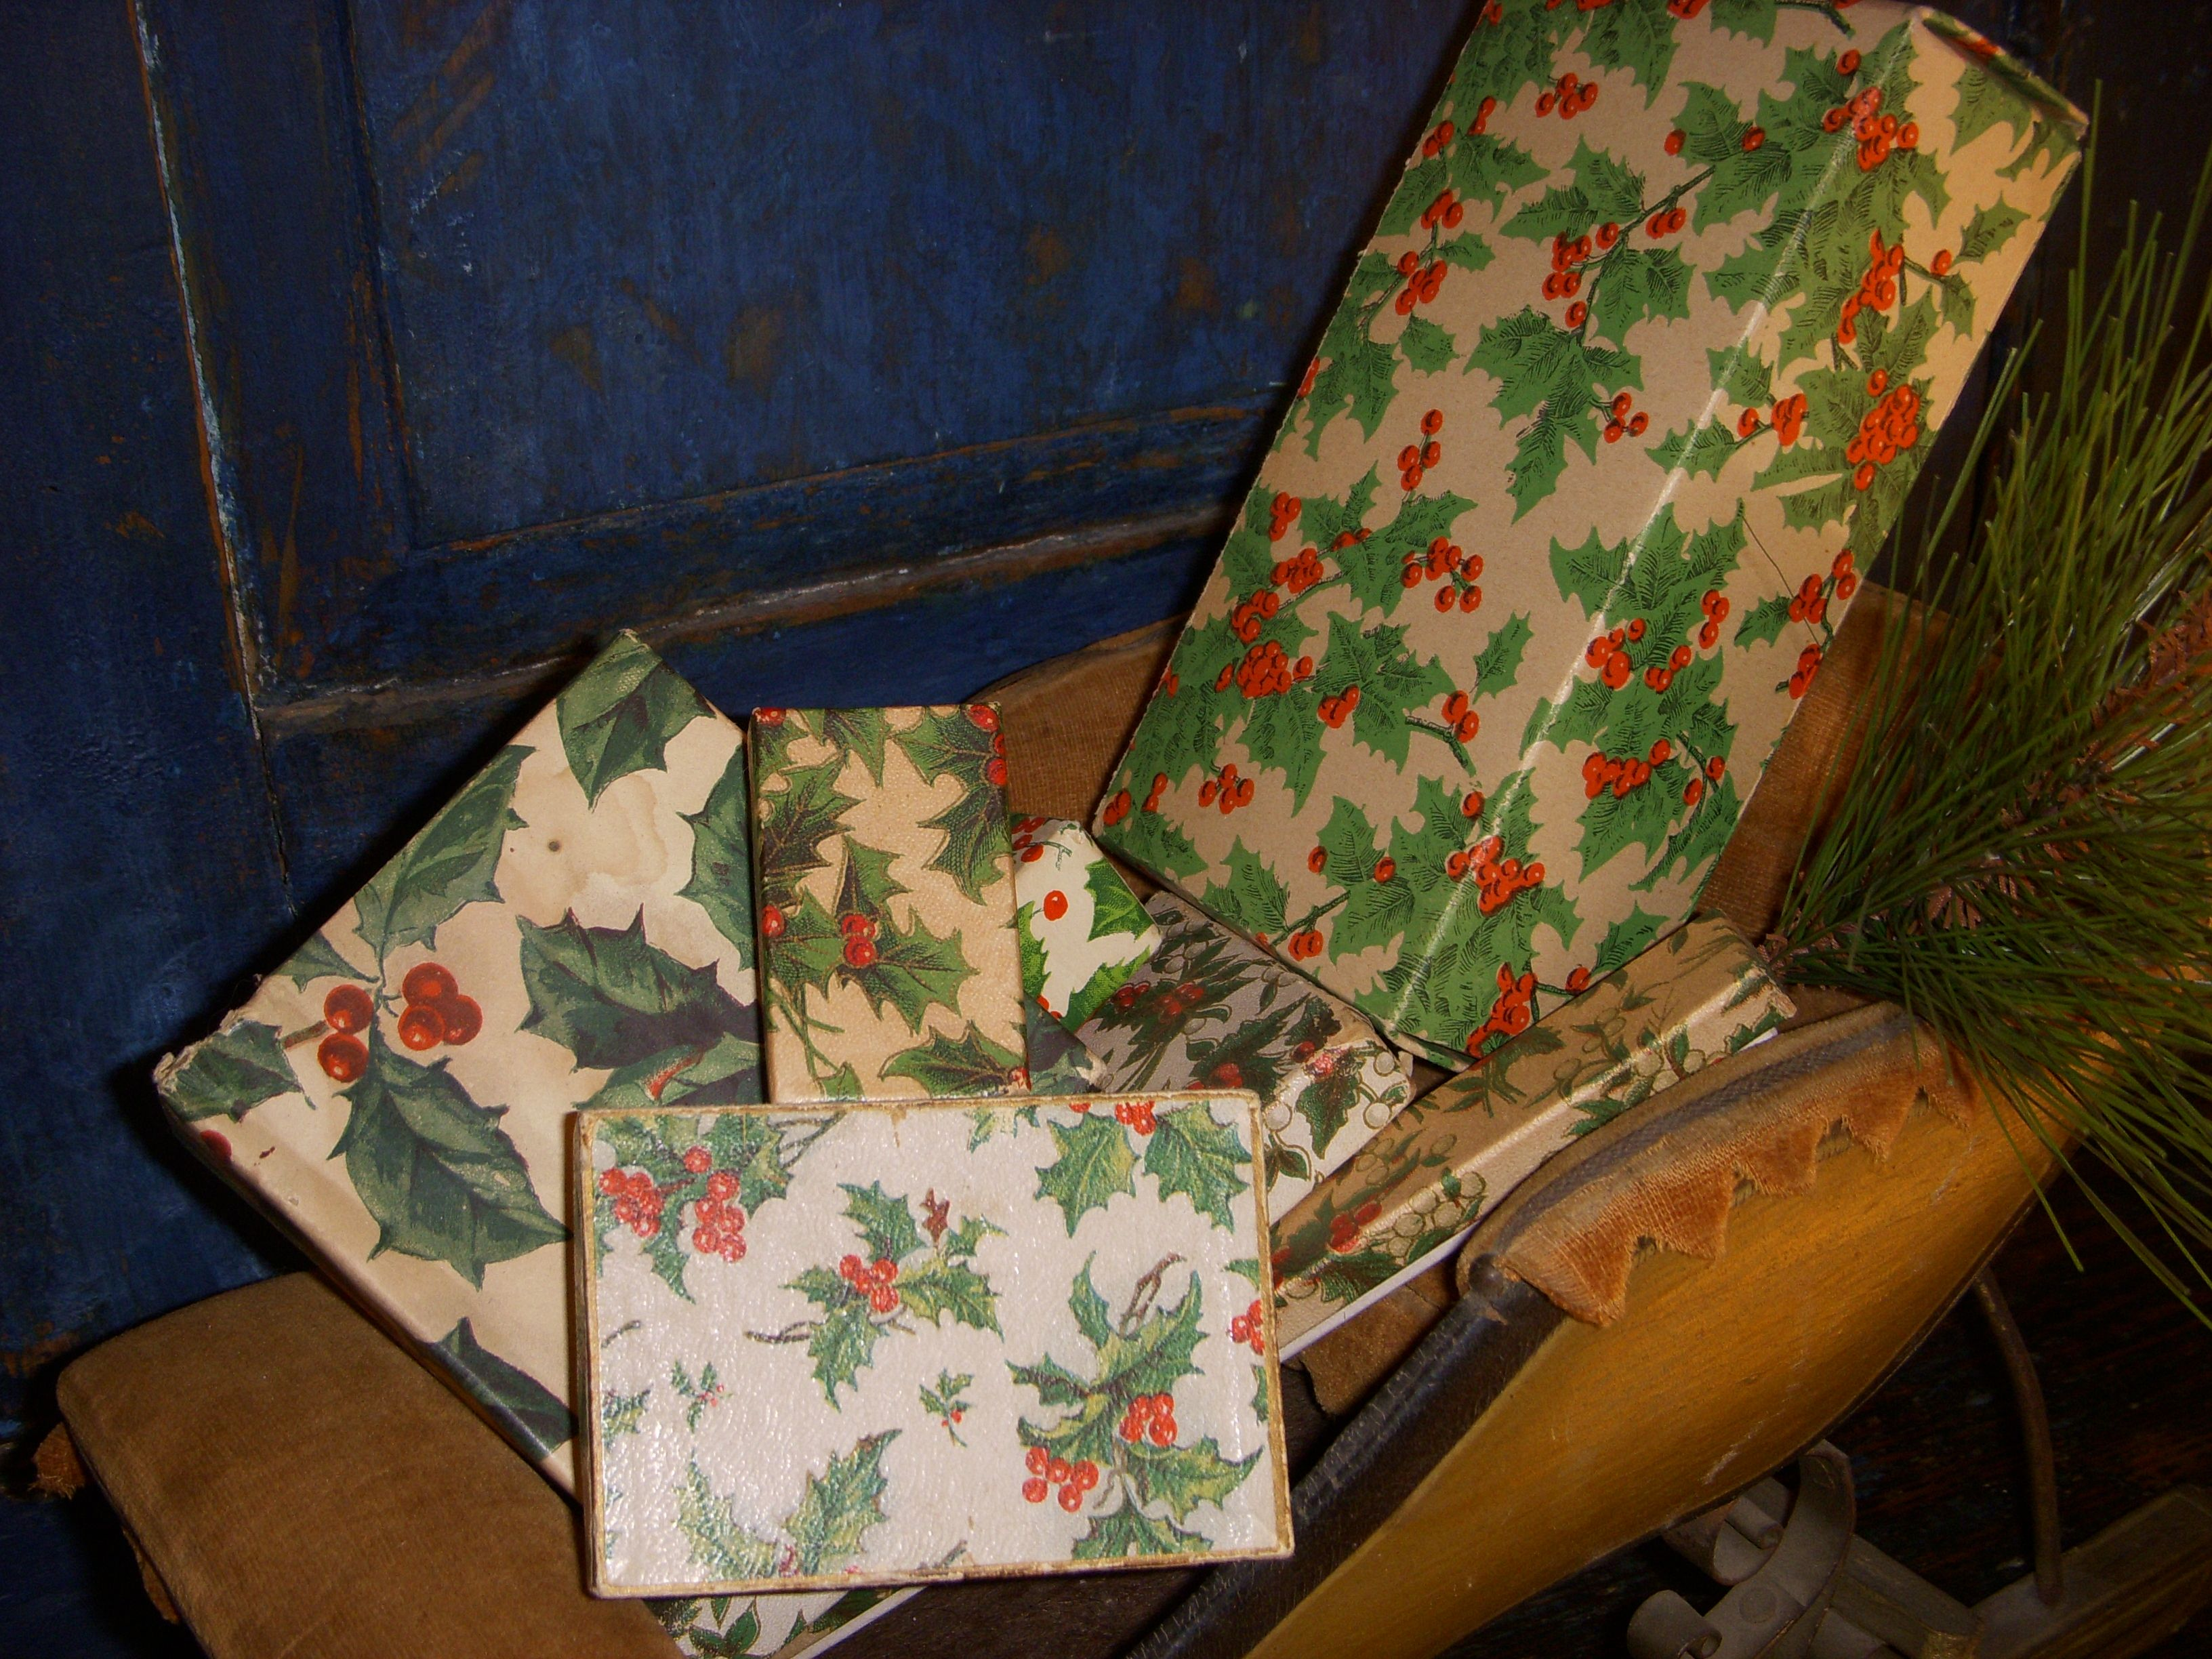 Holly boxes in sleigh